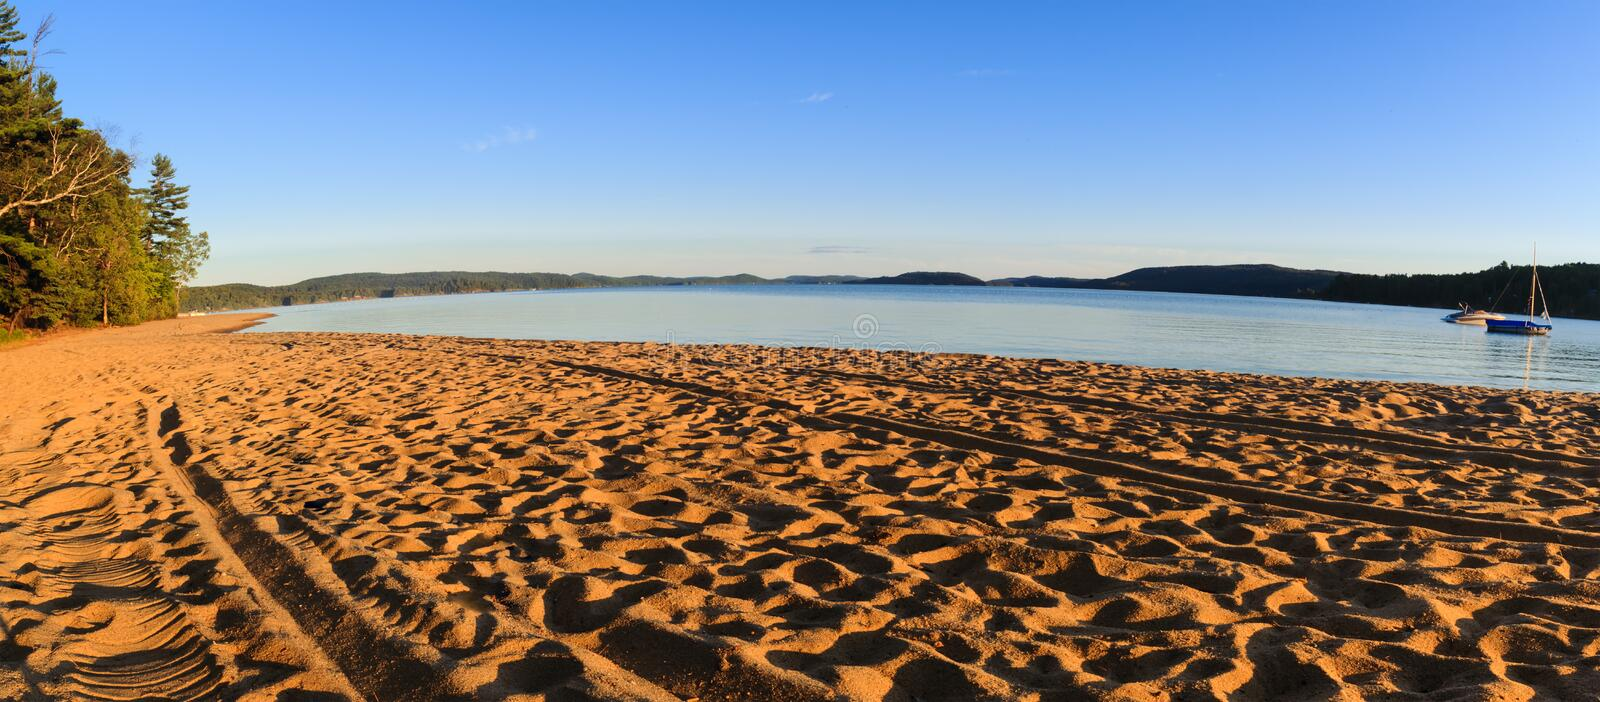 Golden destination place for vacations in summer or autumn season. Touristic beach of golden sand with traces of people at sunset. Lake Simon from Quebec royalty free stock photography